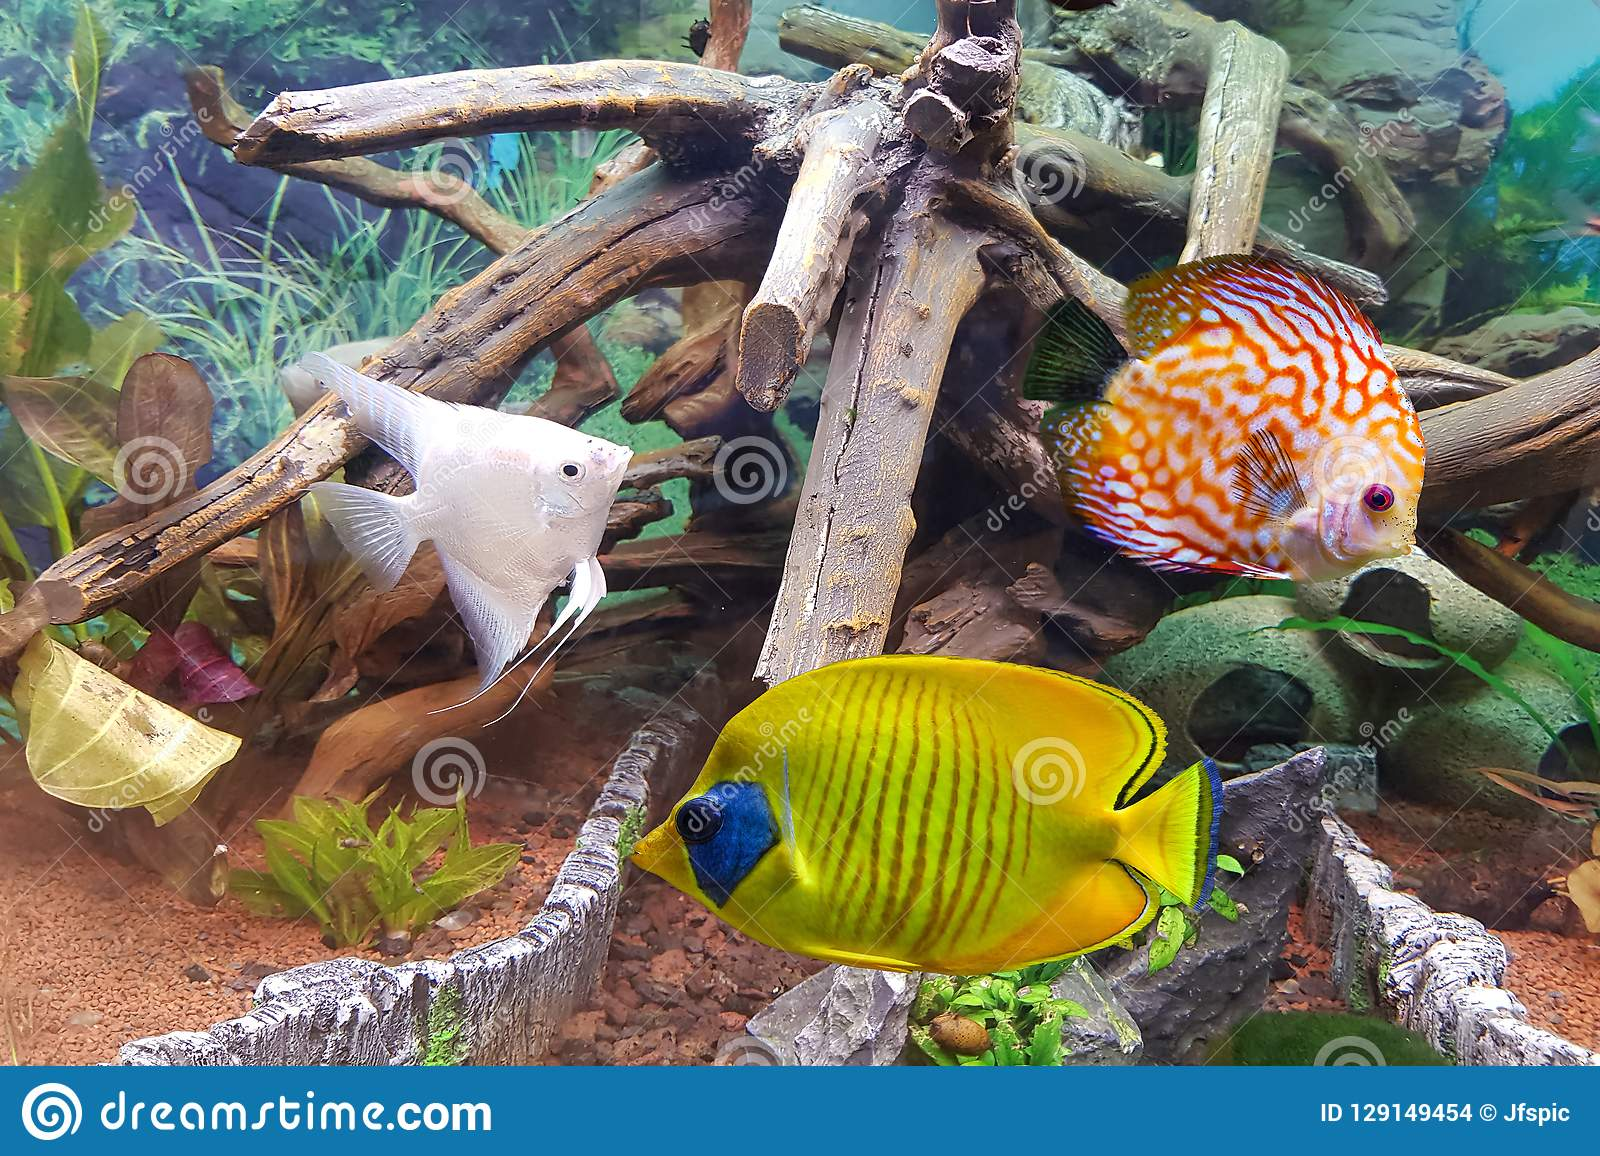 Decoration Interieur Aquarium Aquarium D Intérieur Un Aquarium D Eau Douce Tropical Photo Stock